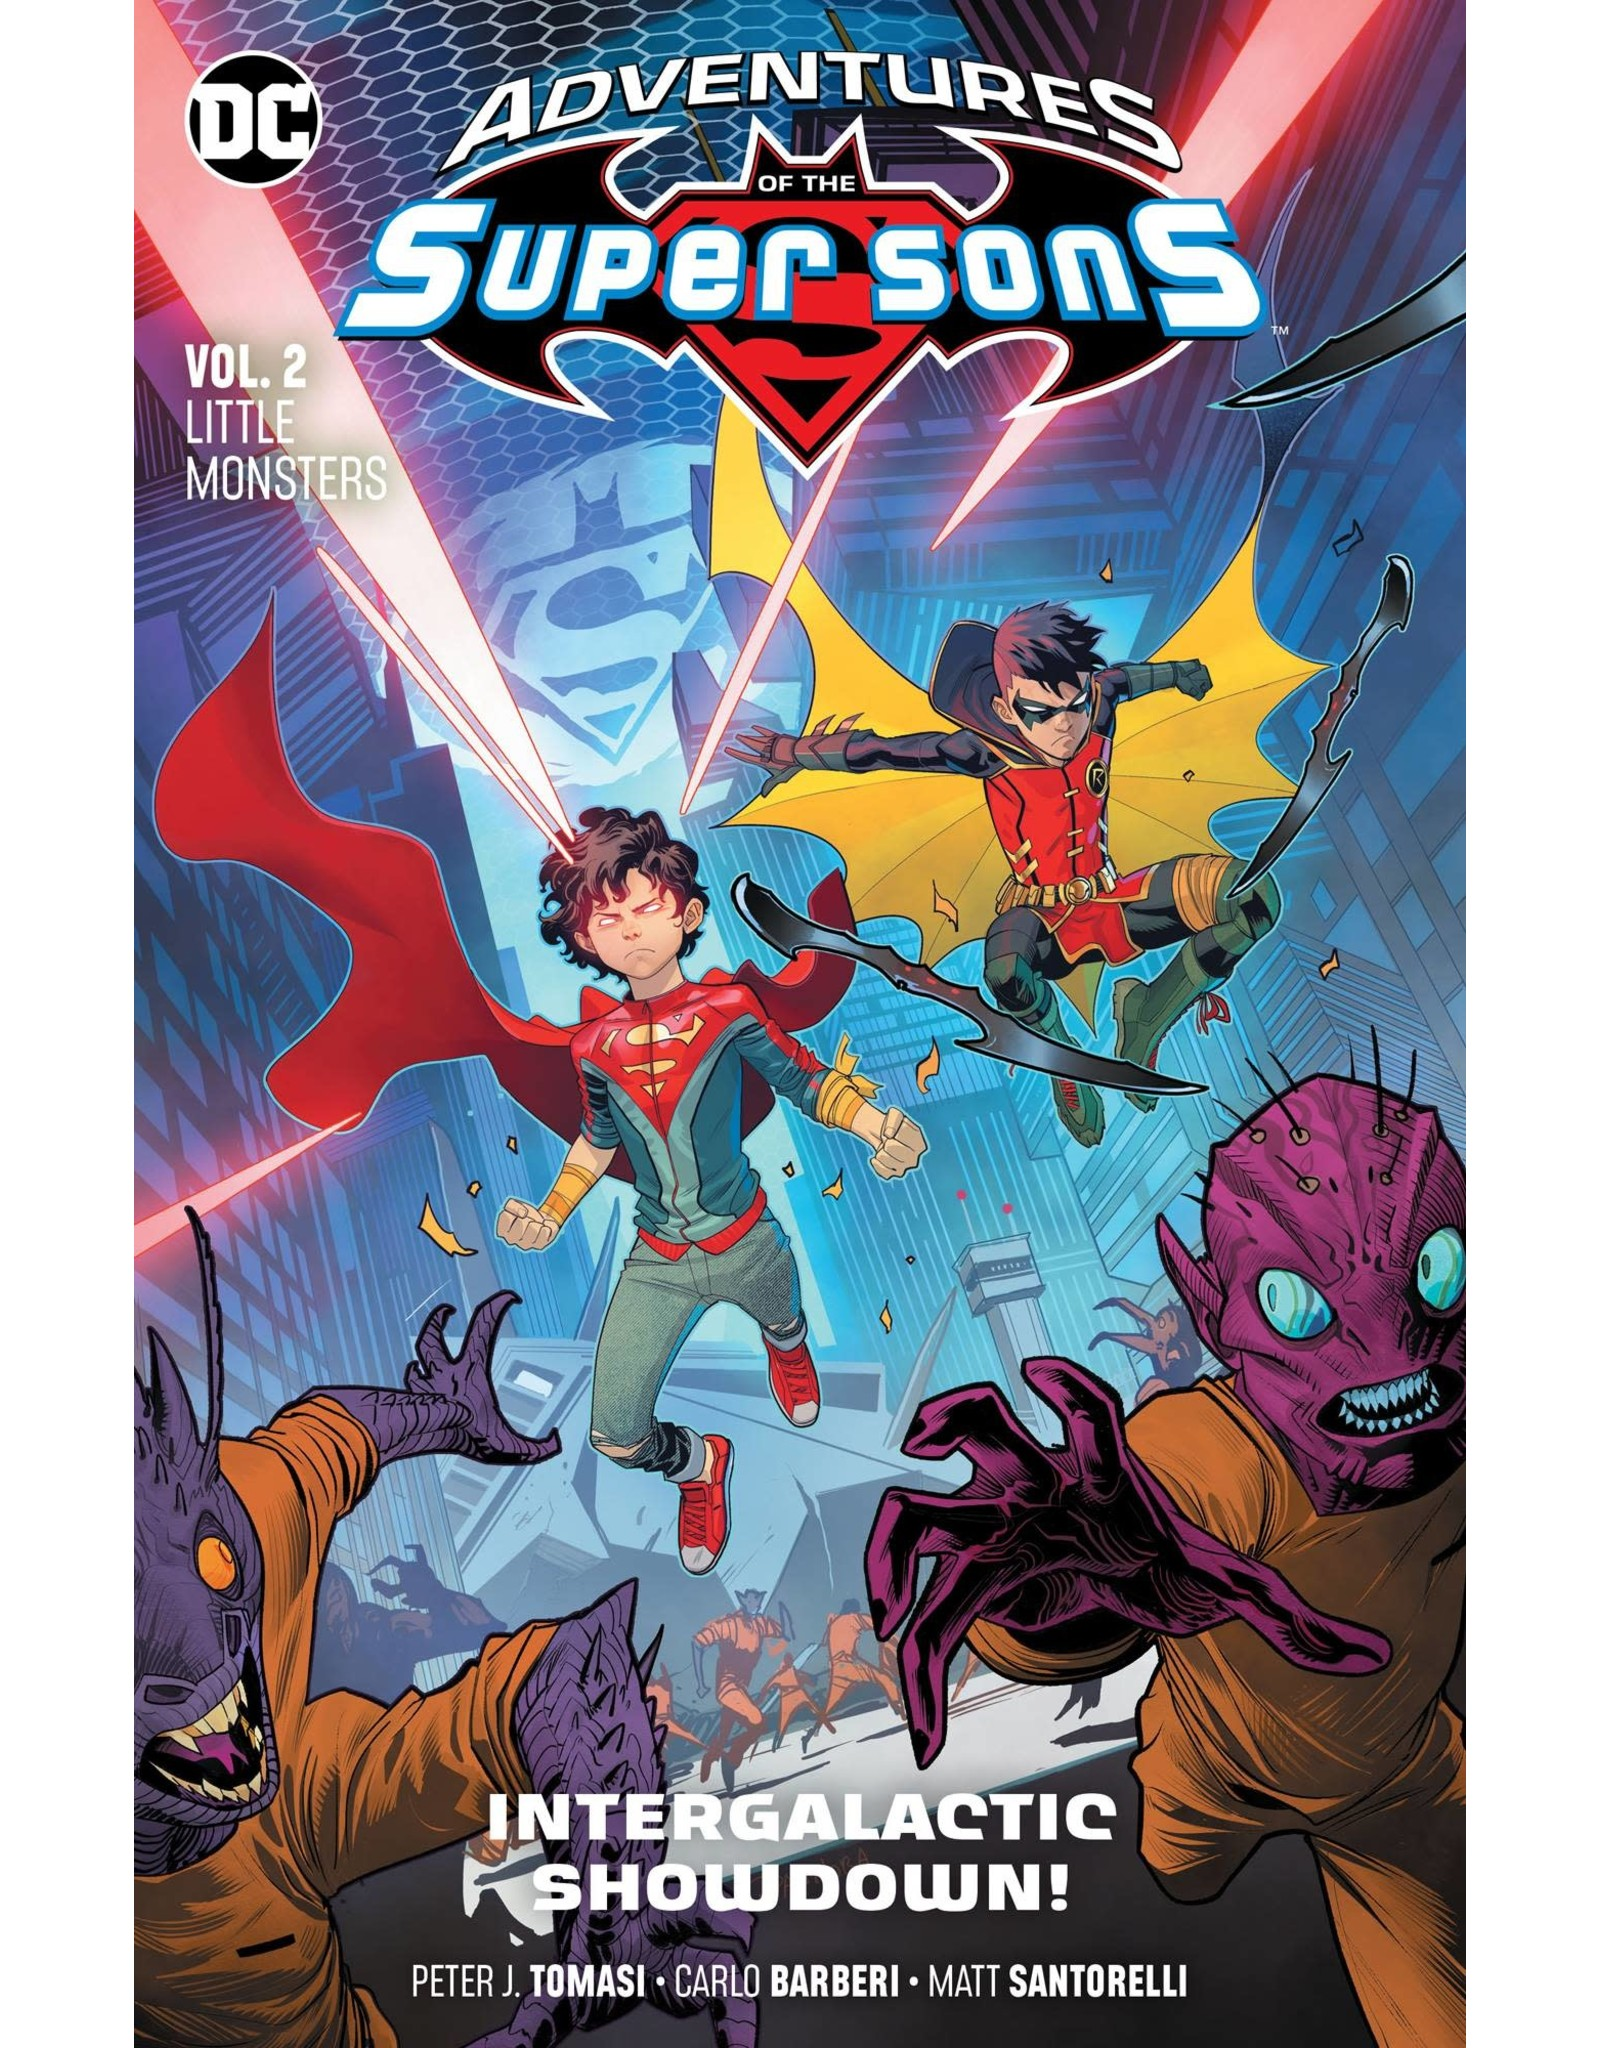 DC COMICS ADVENTURES OF THE SUPER SONS TP VOL 02 LITTLE MONSTERS